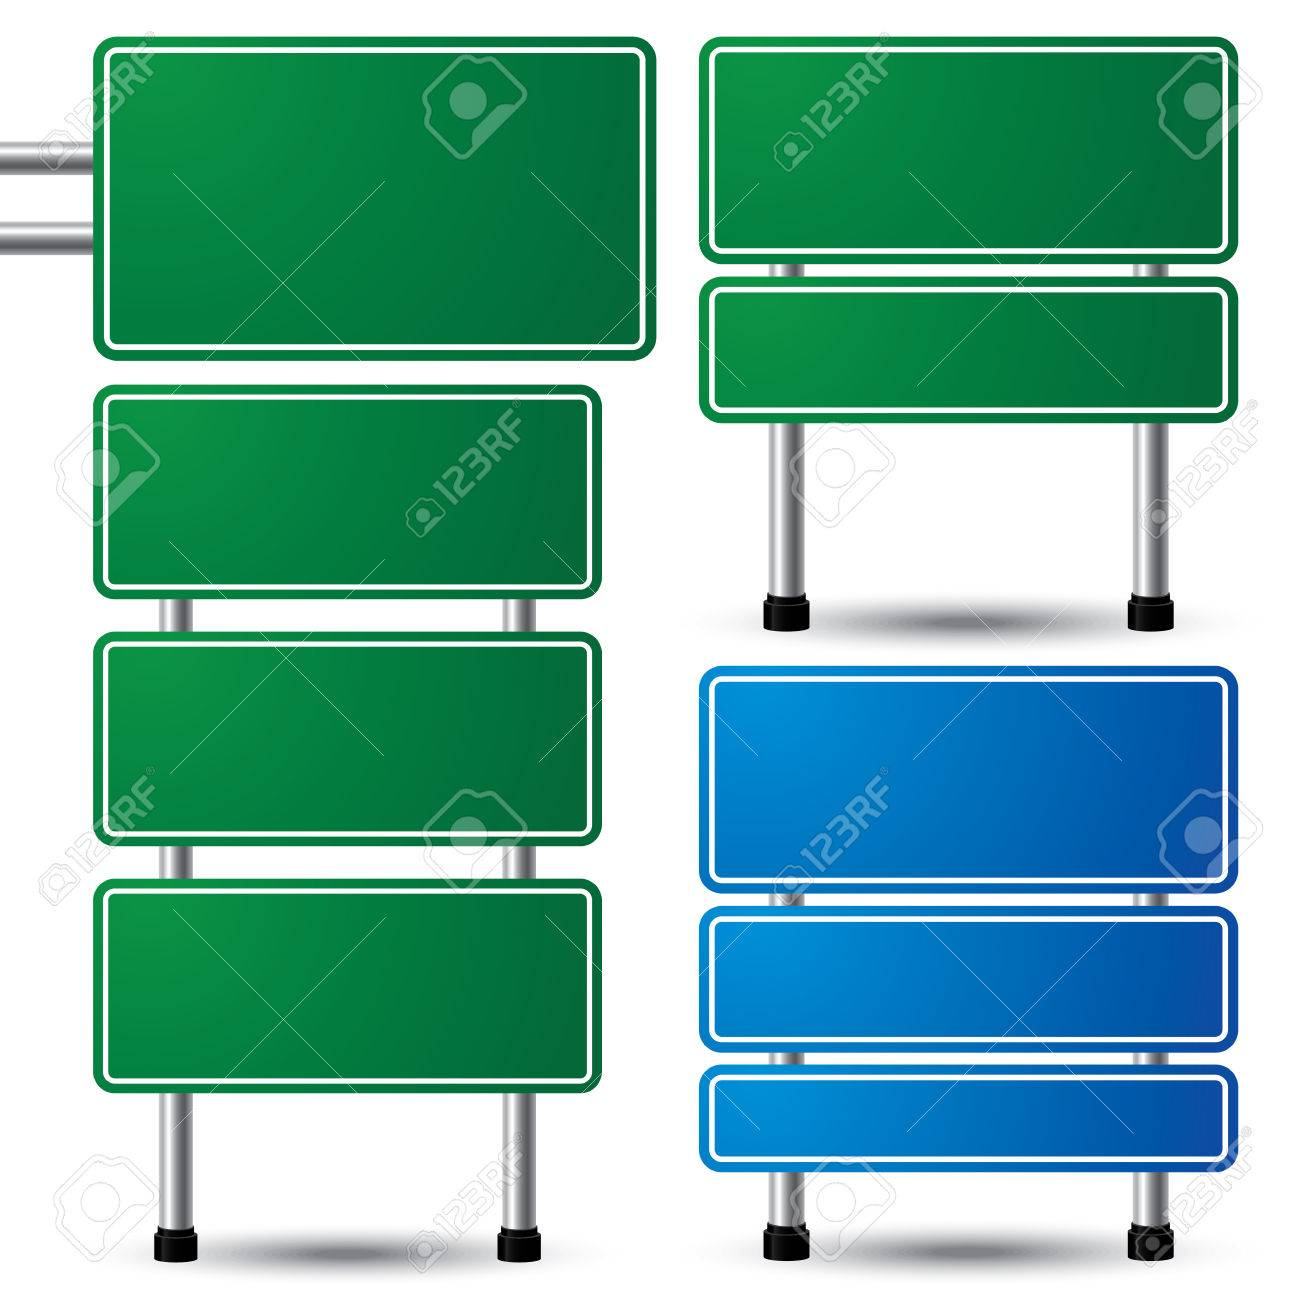 Blank green and blue traffic road sign set on white background for your message  vector illustration Stock Vector - 22699290